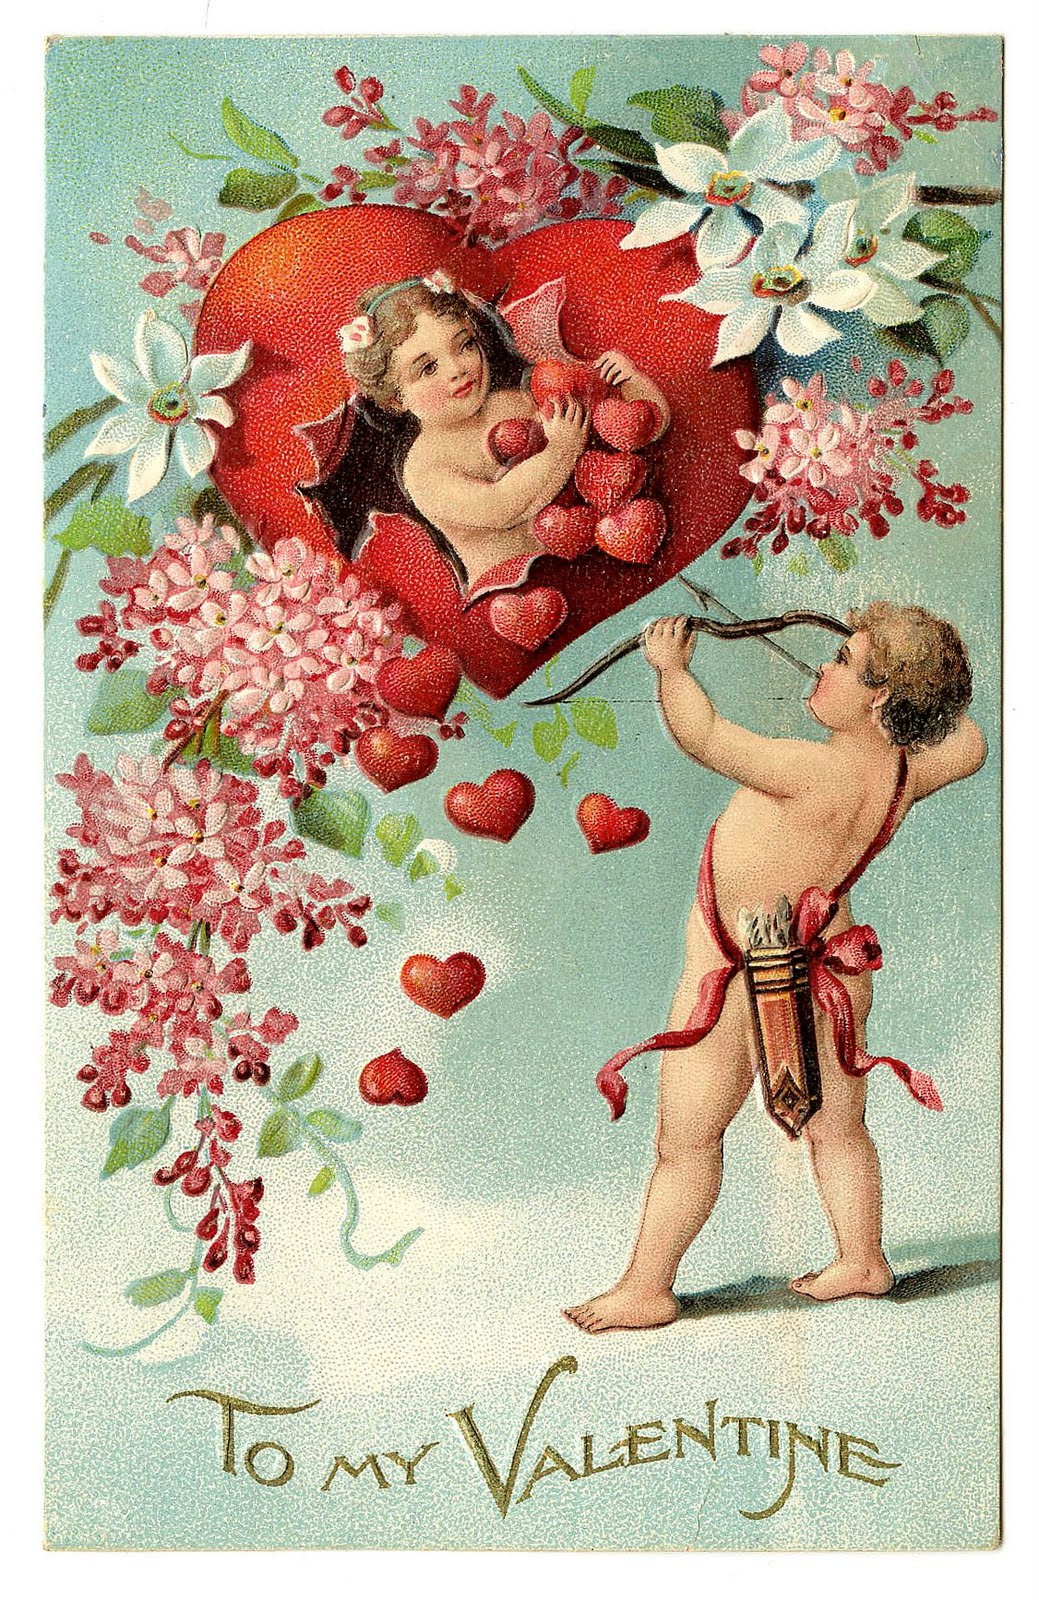 Early 20th century Valentine Card (Image in public domain)